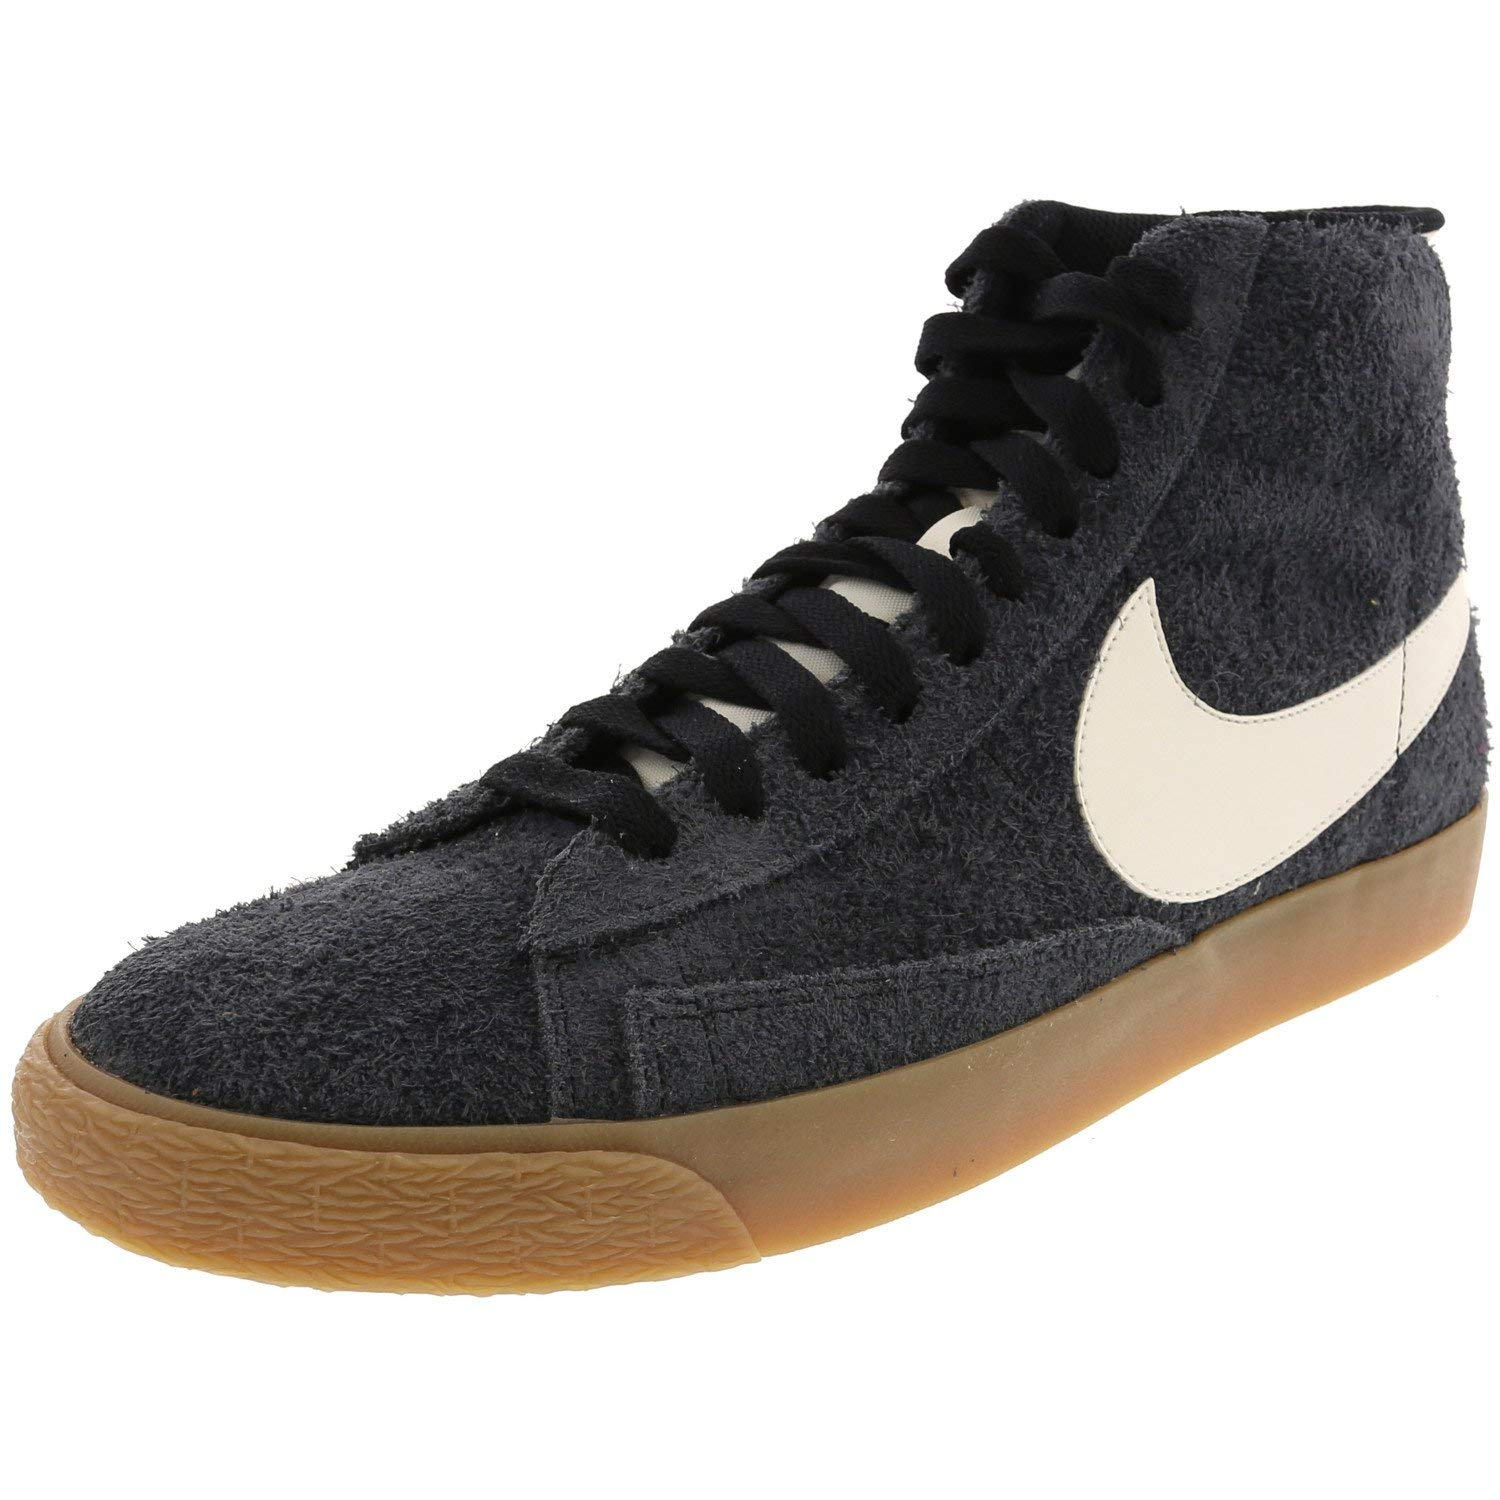 super popular 7b821 9140a Nike Womens Blazer Mid Suede Vintage Retro High Top Fashion Sneakers